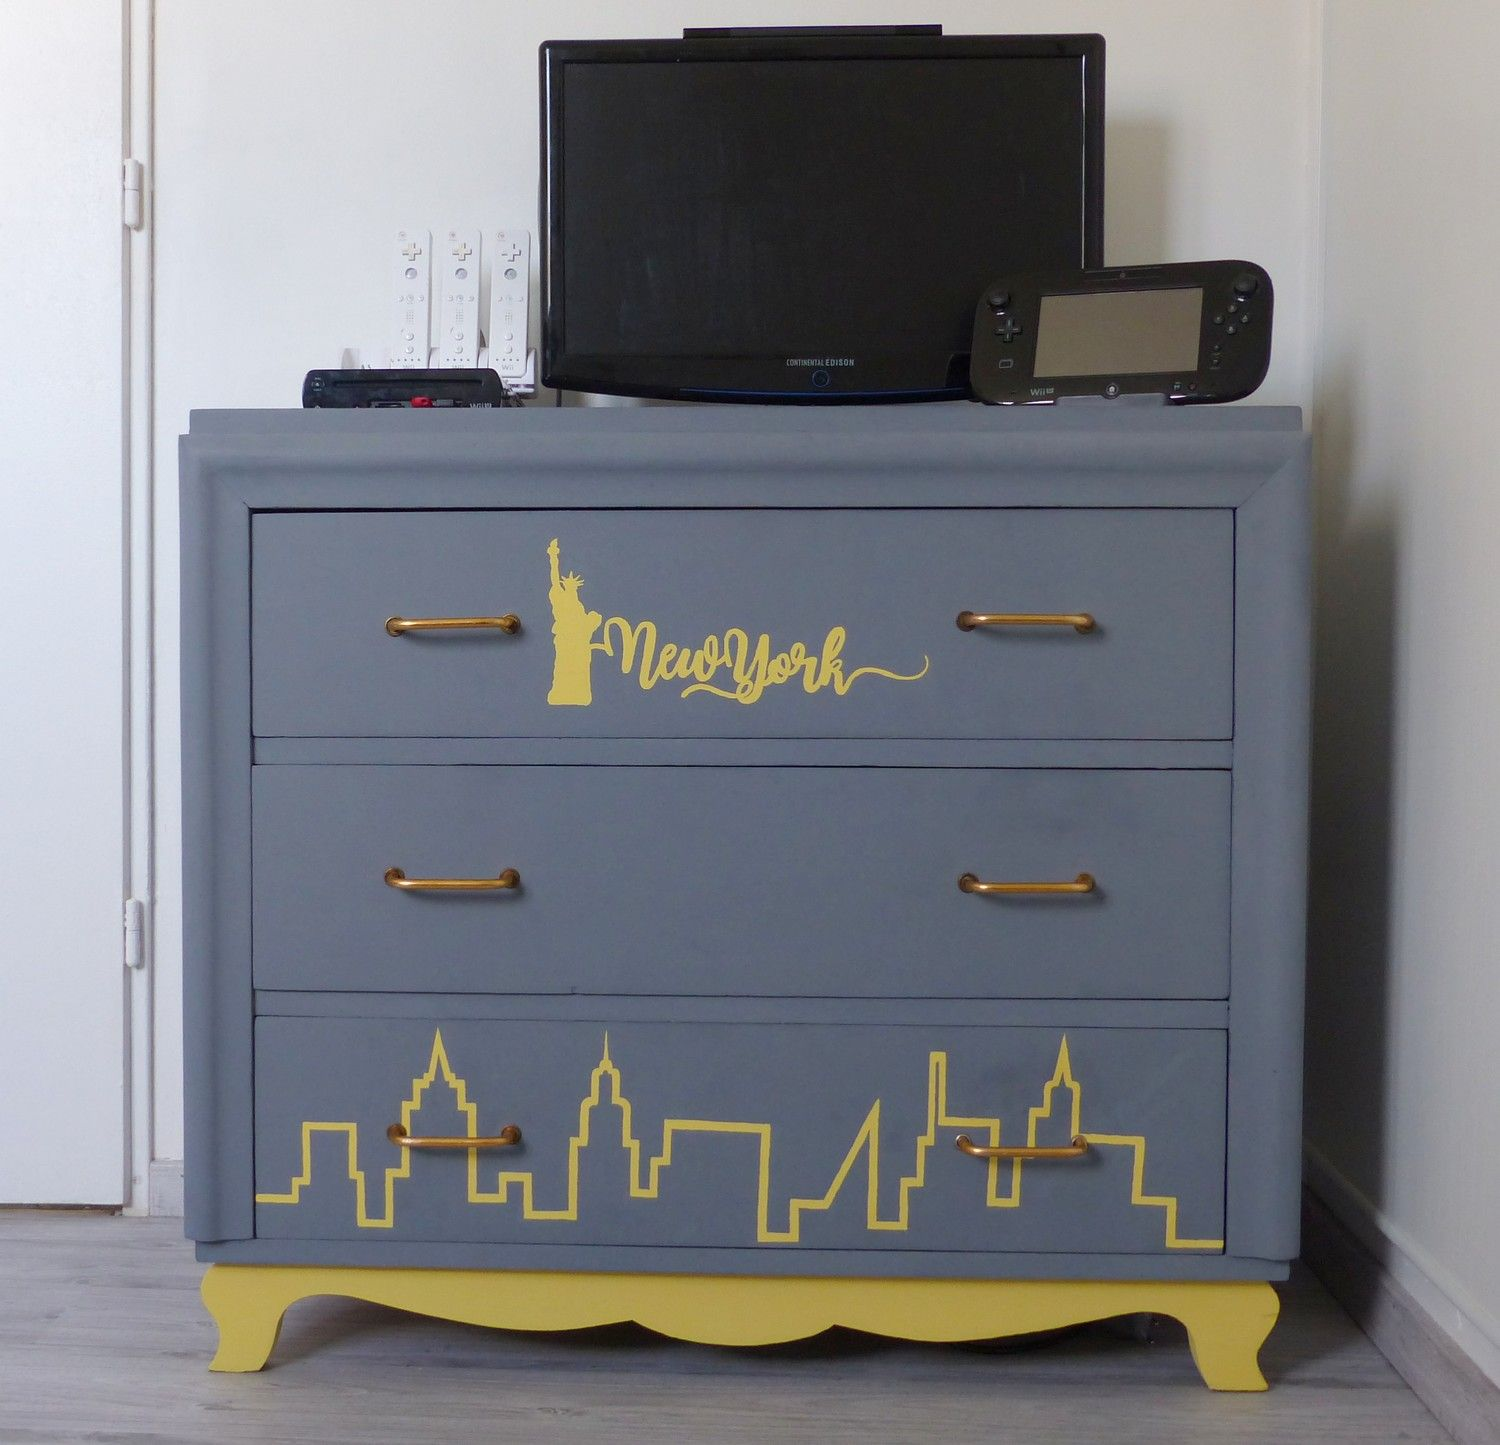 Relooking Meuble Commode New York Idee Deco Chambre Ado Gris Jaune